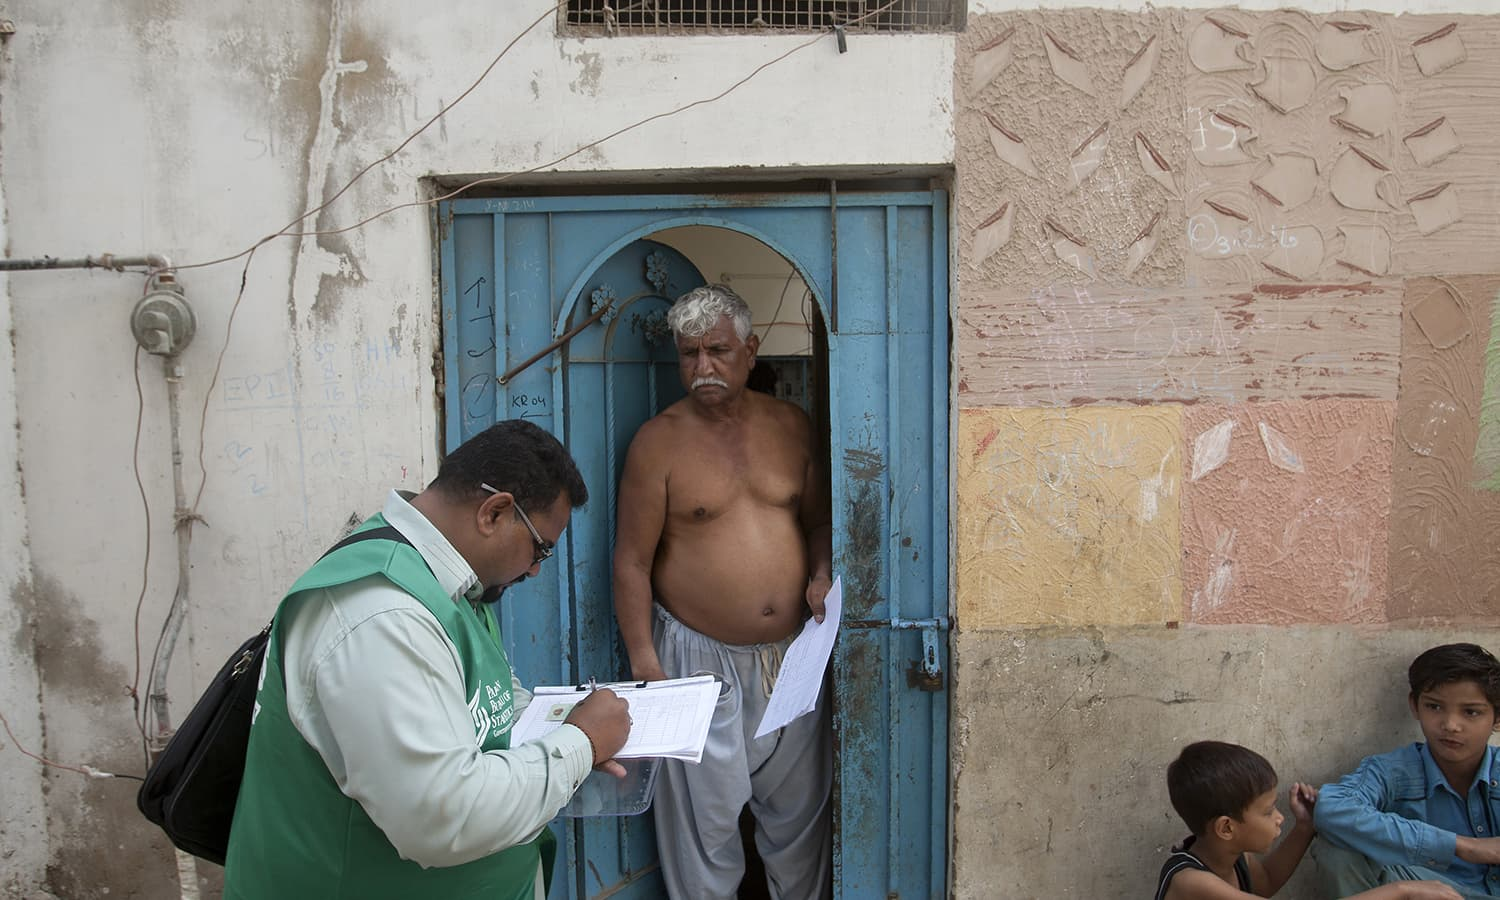 A government official collects data from a resident during a survey in Karachi. —AP